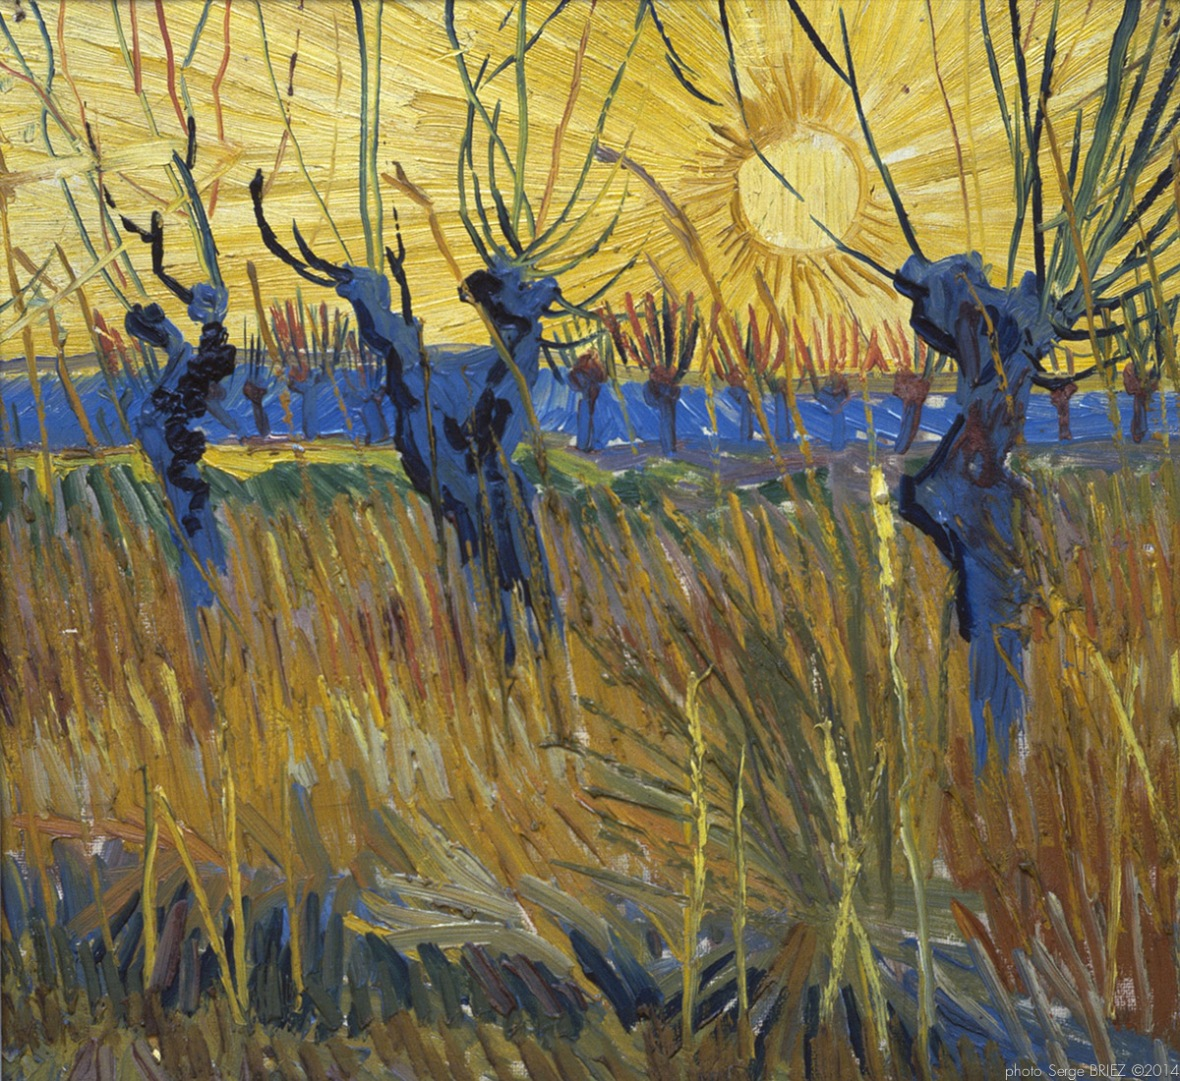 willows at sunset, Saules au soleil couchant, 1888, Van gogh's painting photographed by Serge Briez, ©2014 Cap médiations